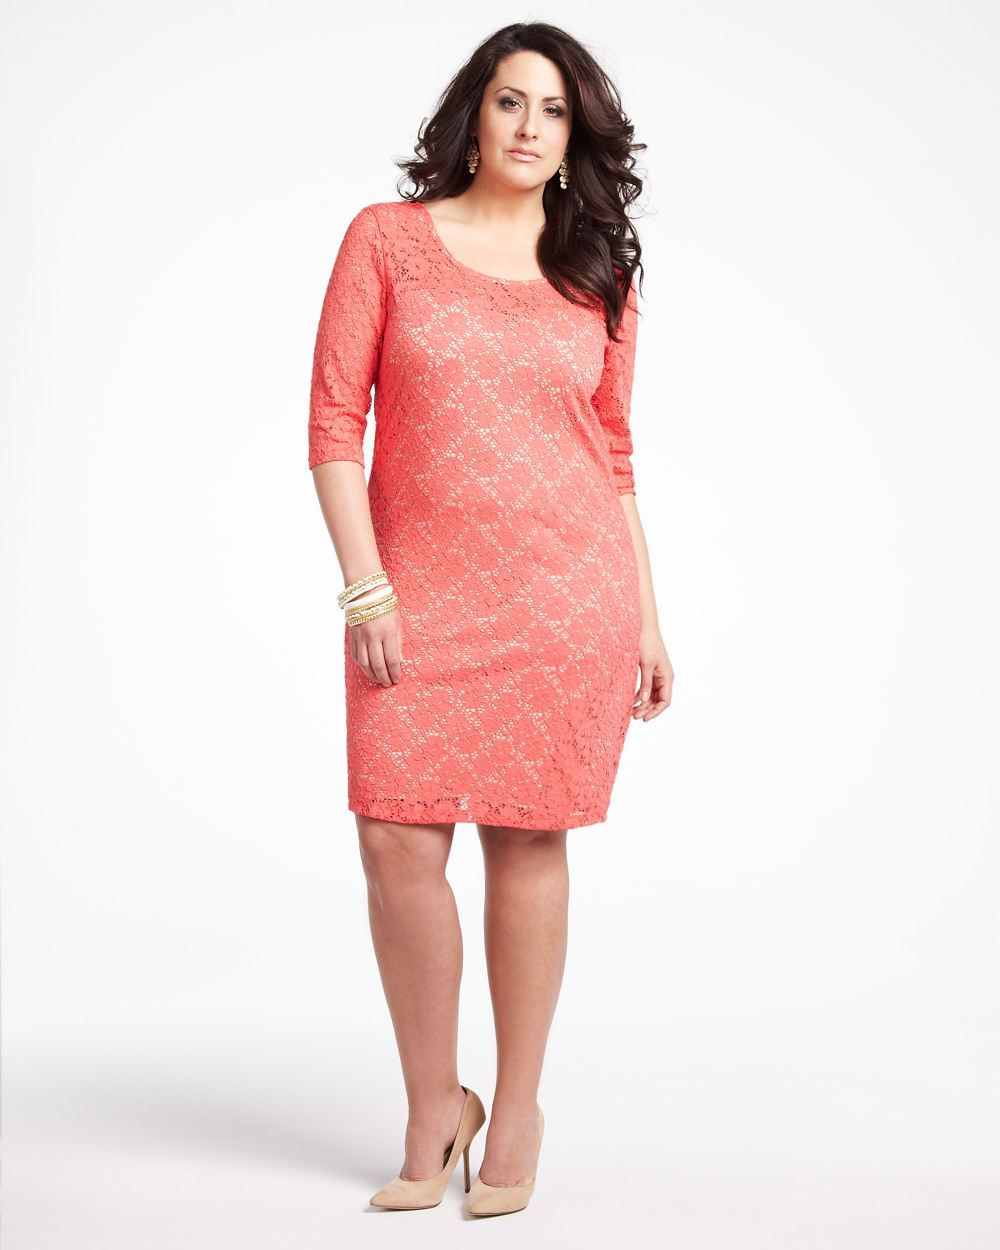 754-plus-size-lace-dress-in-teaberry-for-women-1 (1000×1250